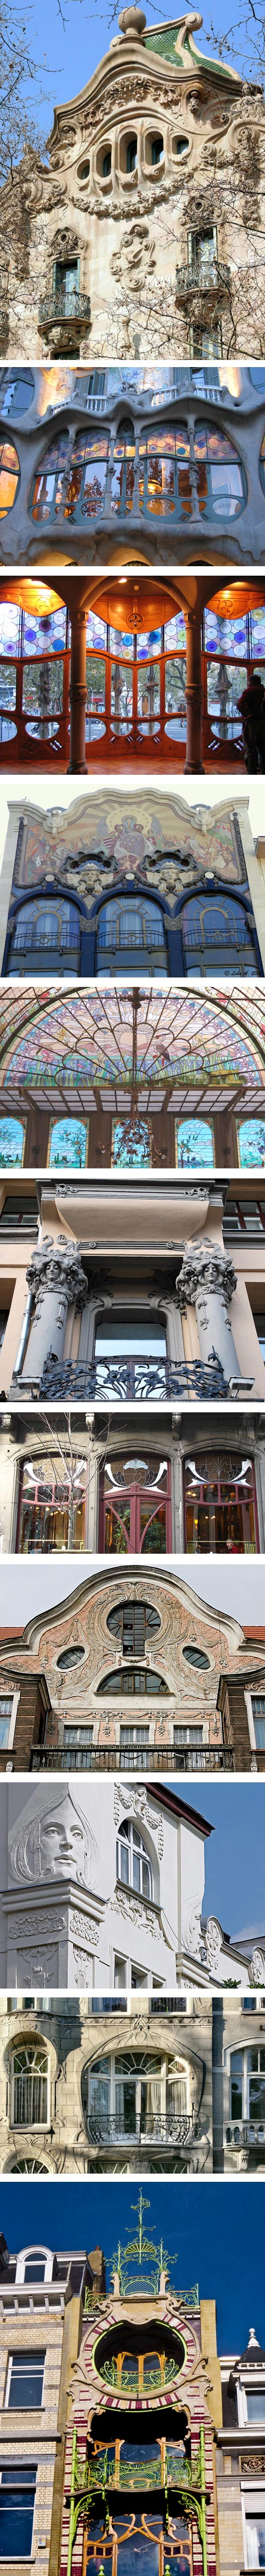 Art Nouveau Windows